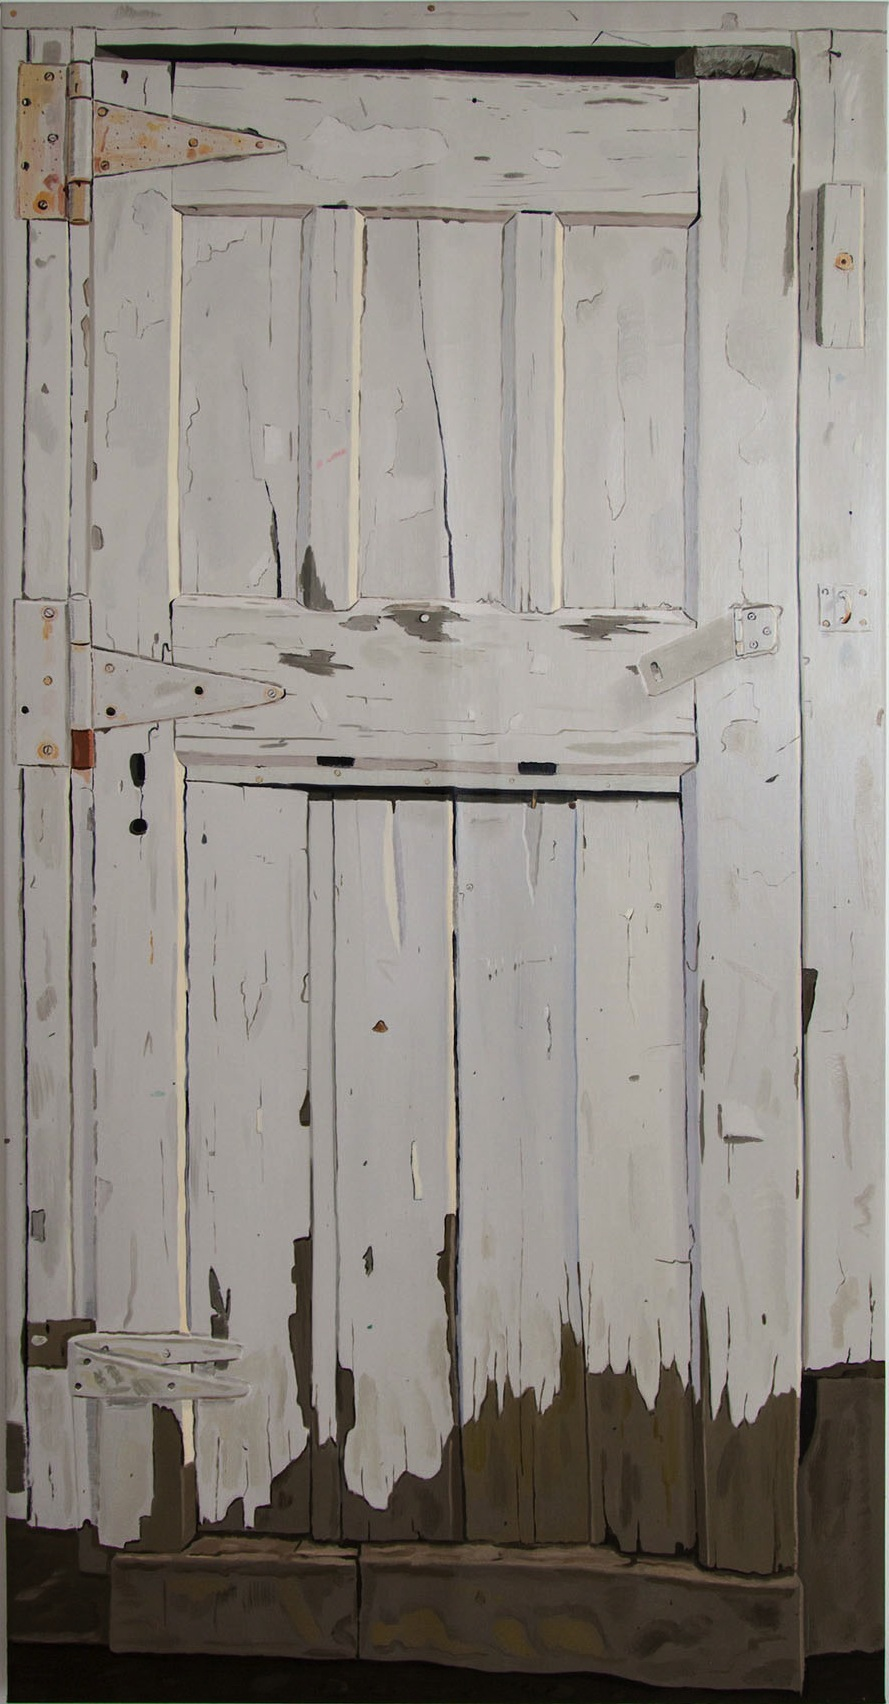 Josephine Halvorson, Woodshed (Door), 2013, oil on linen, 70 x 35 inches (courte